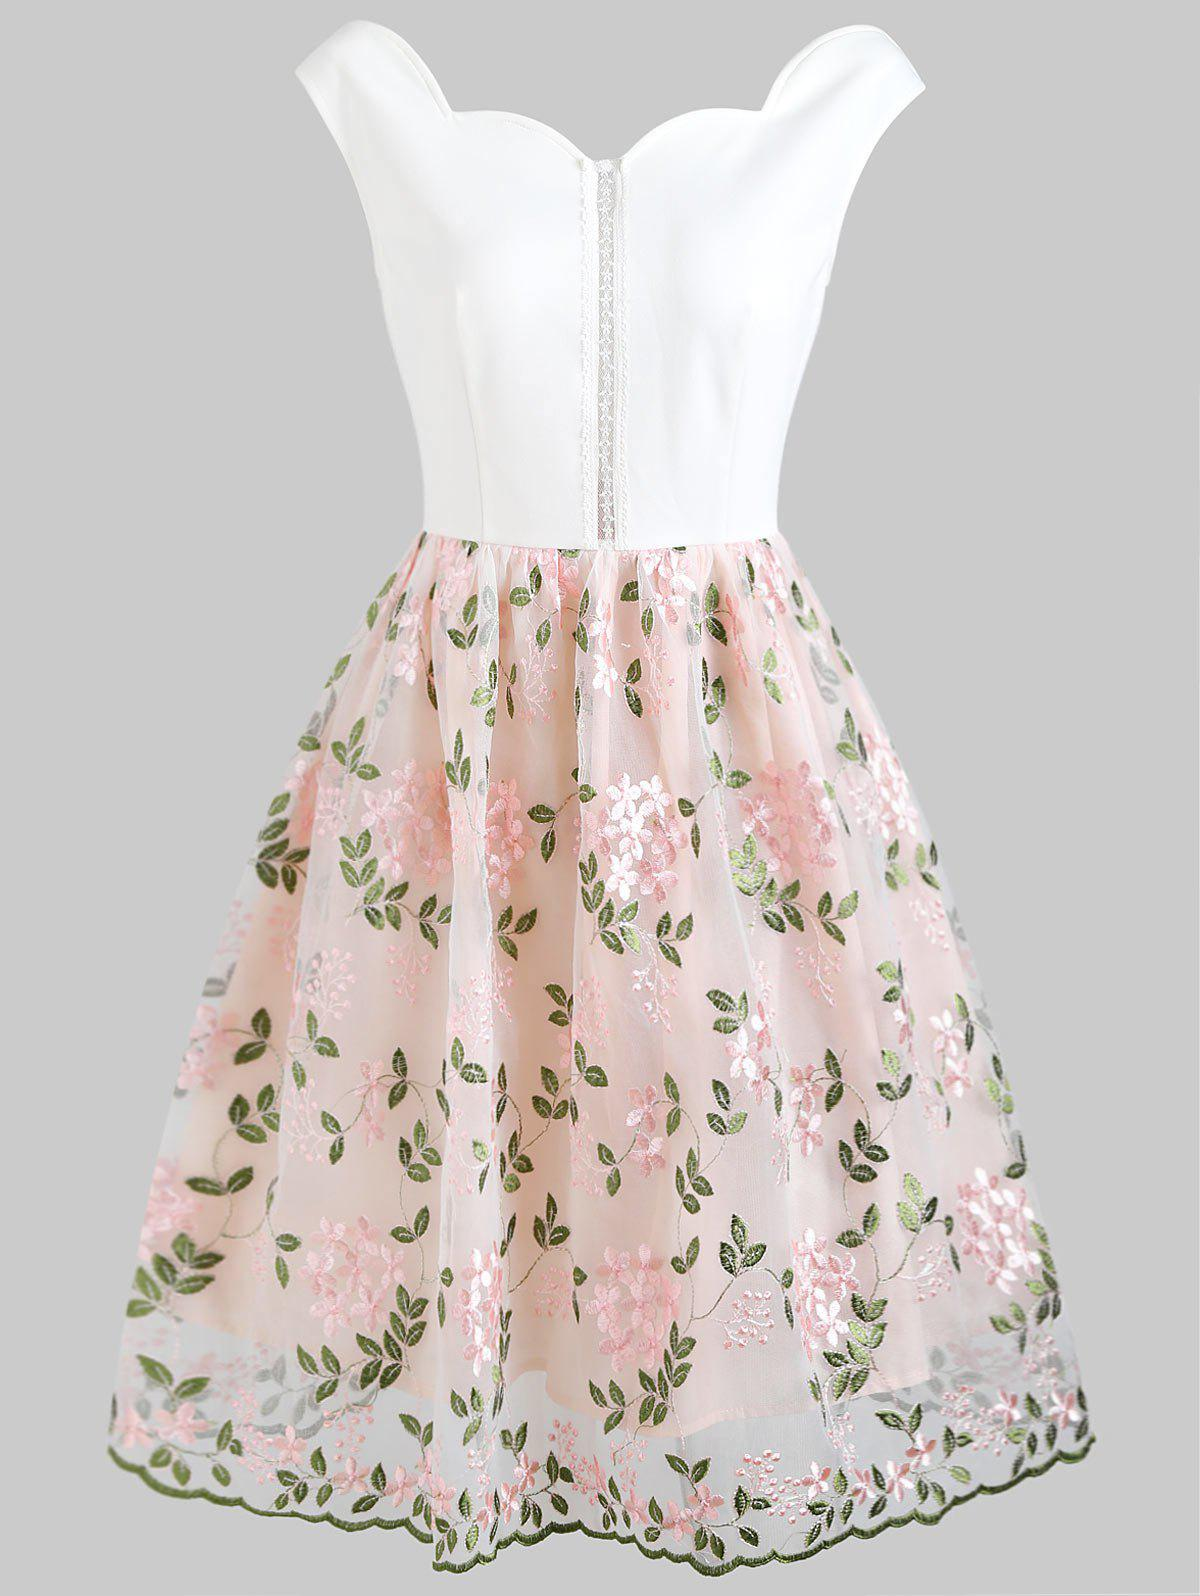 Latest Foral Embroidery High Waist Sleeveless Flare Dress